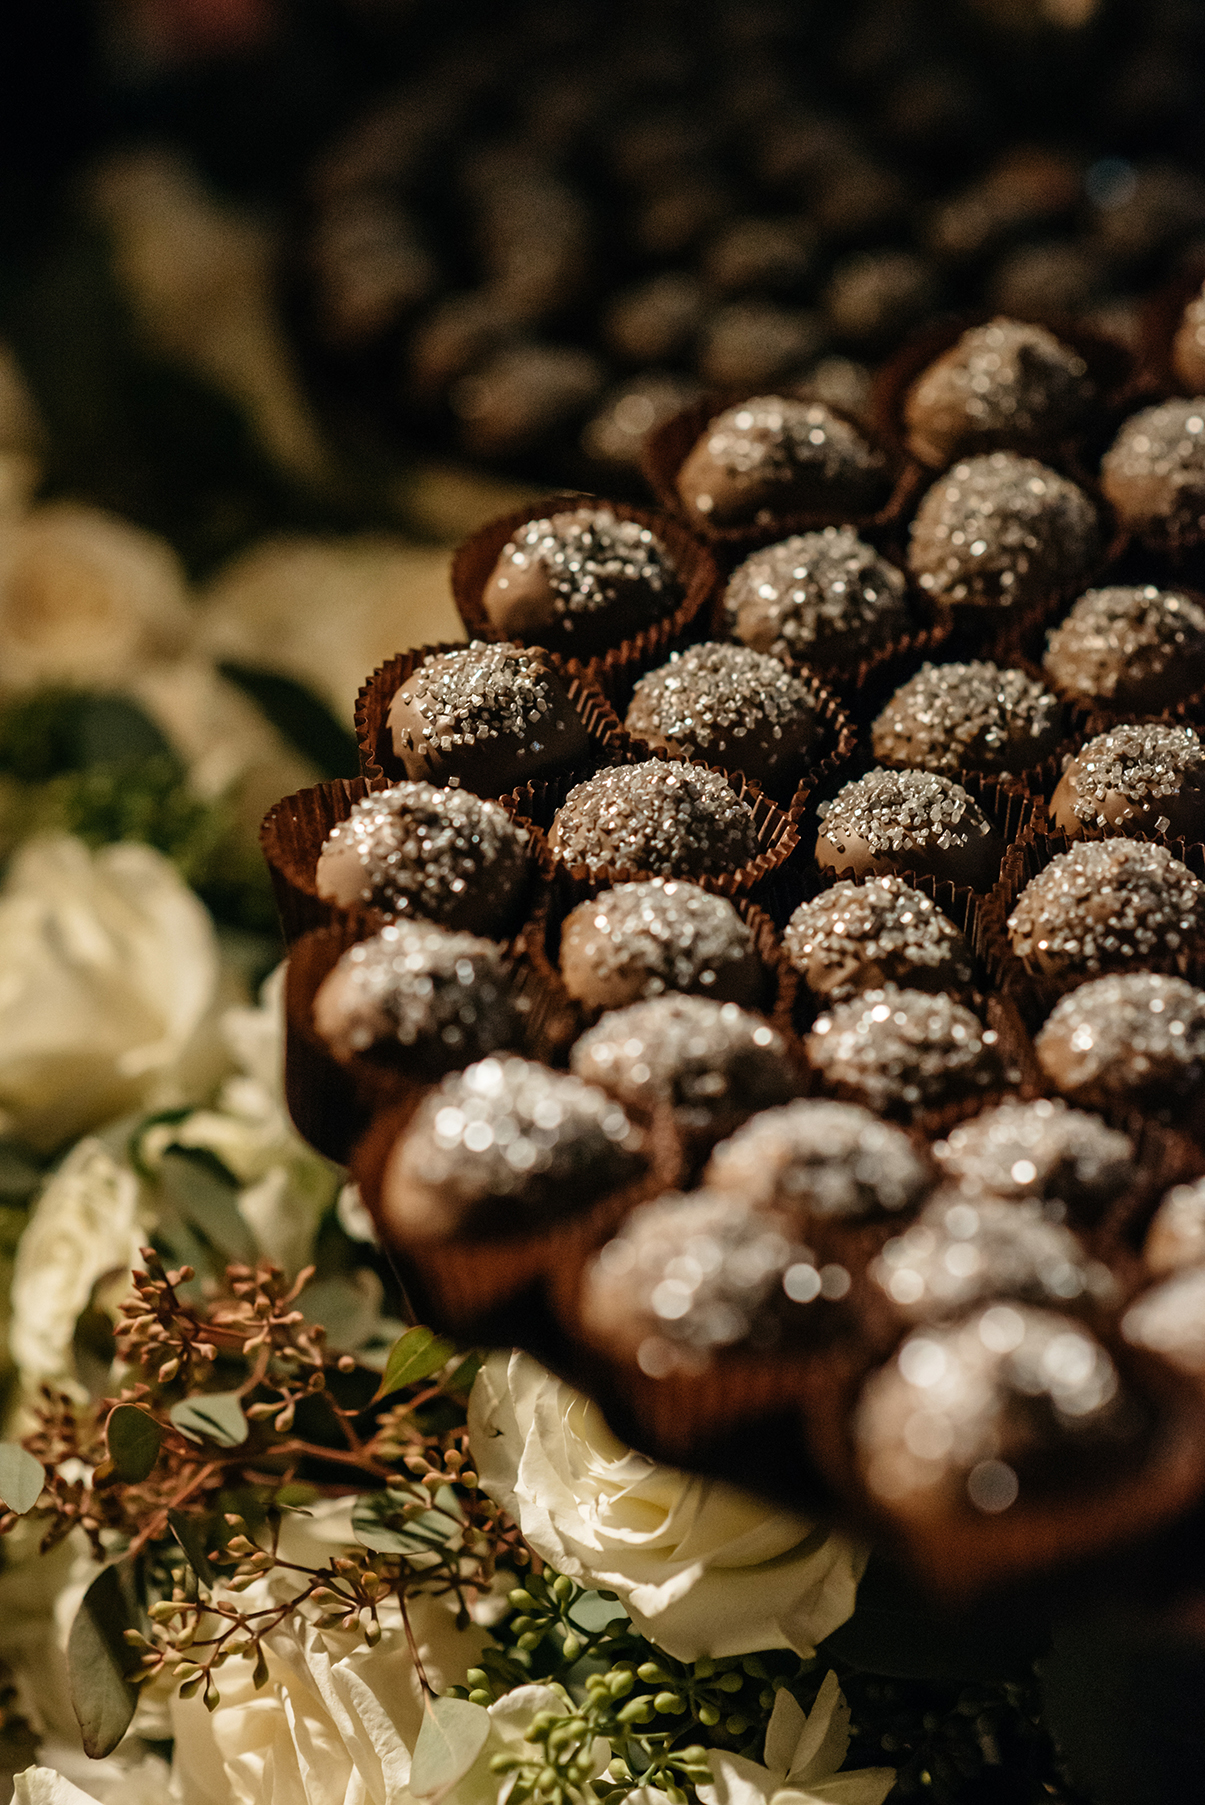 houston wedding, dessert table, catering, chocolate balls